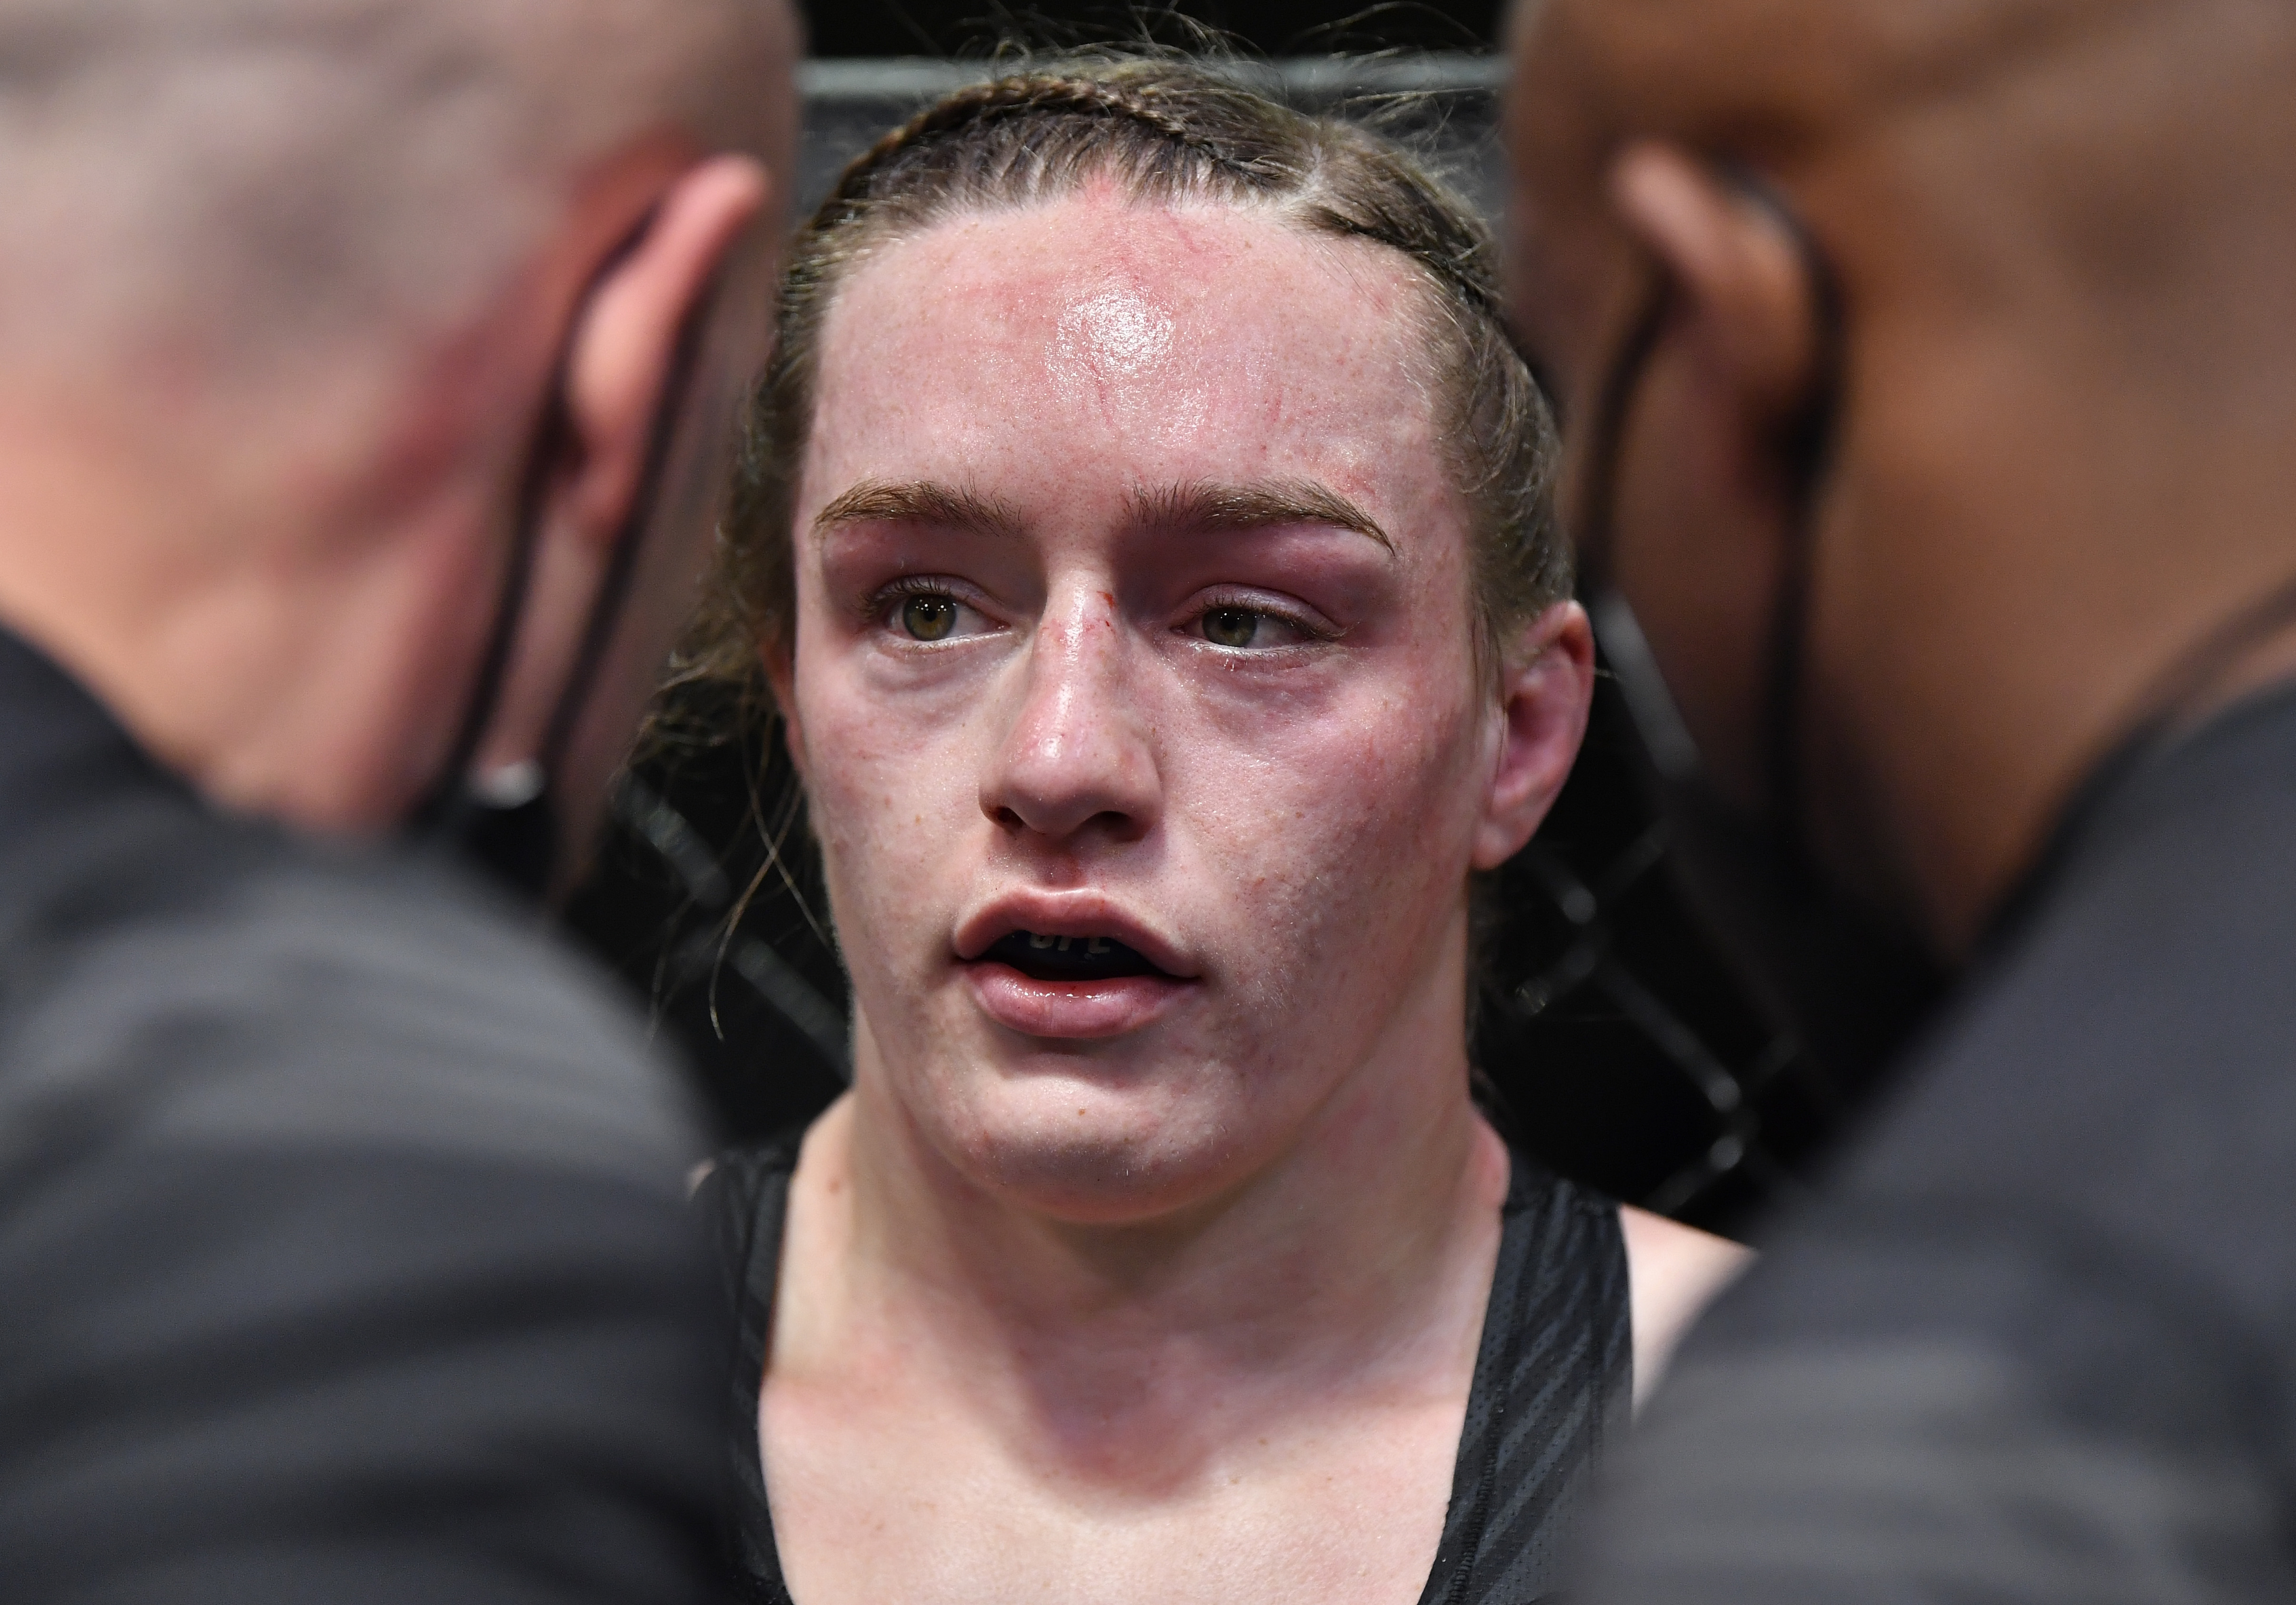 Does Aspen Ladd need a new coach after what we saw in her fight against Norma Dumont at UFC Vegas 40